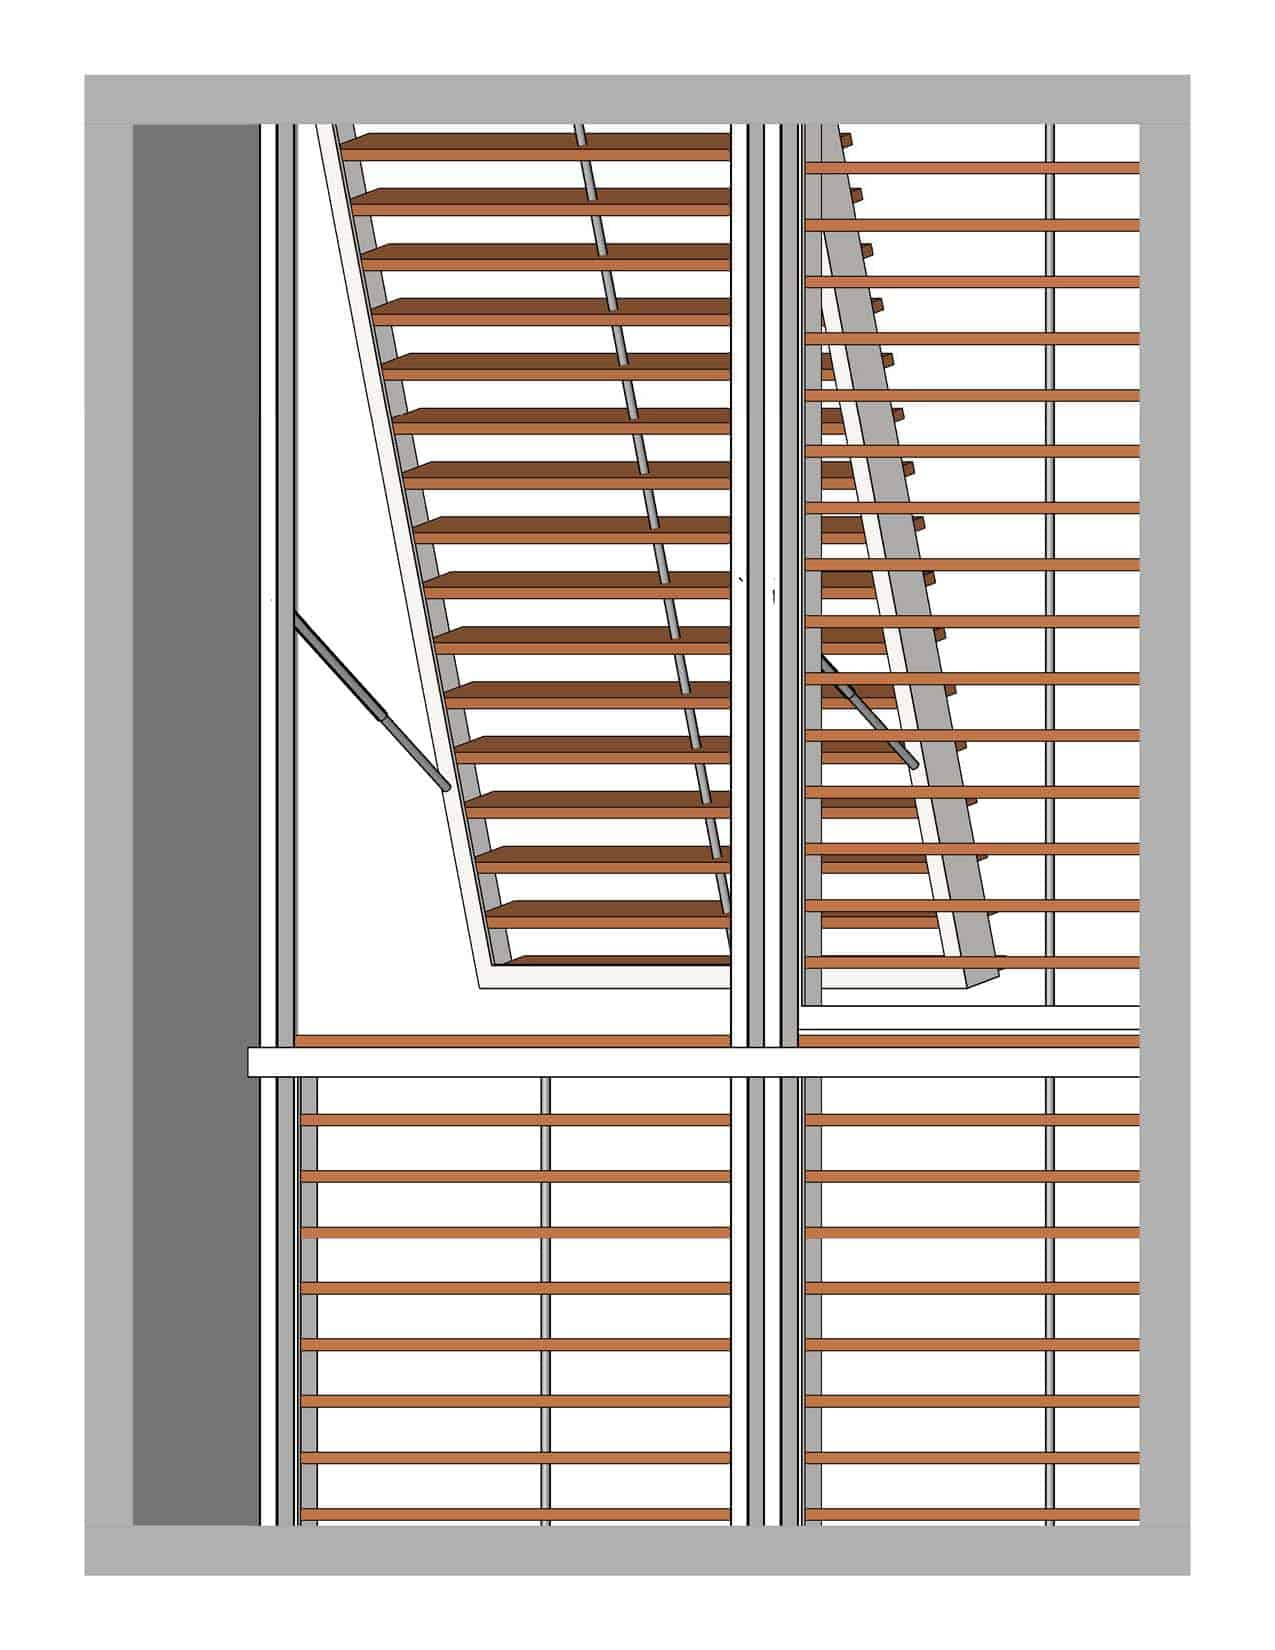 CS_Tramonto Stair_Operable Awning Screen_Study_Page_02